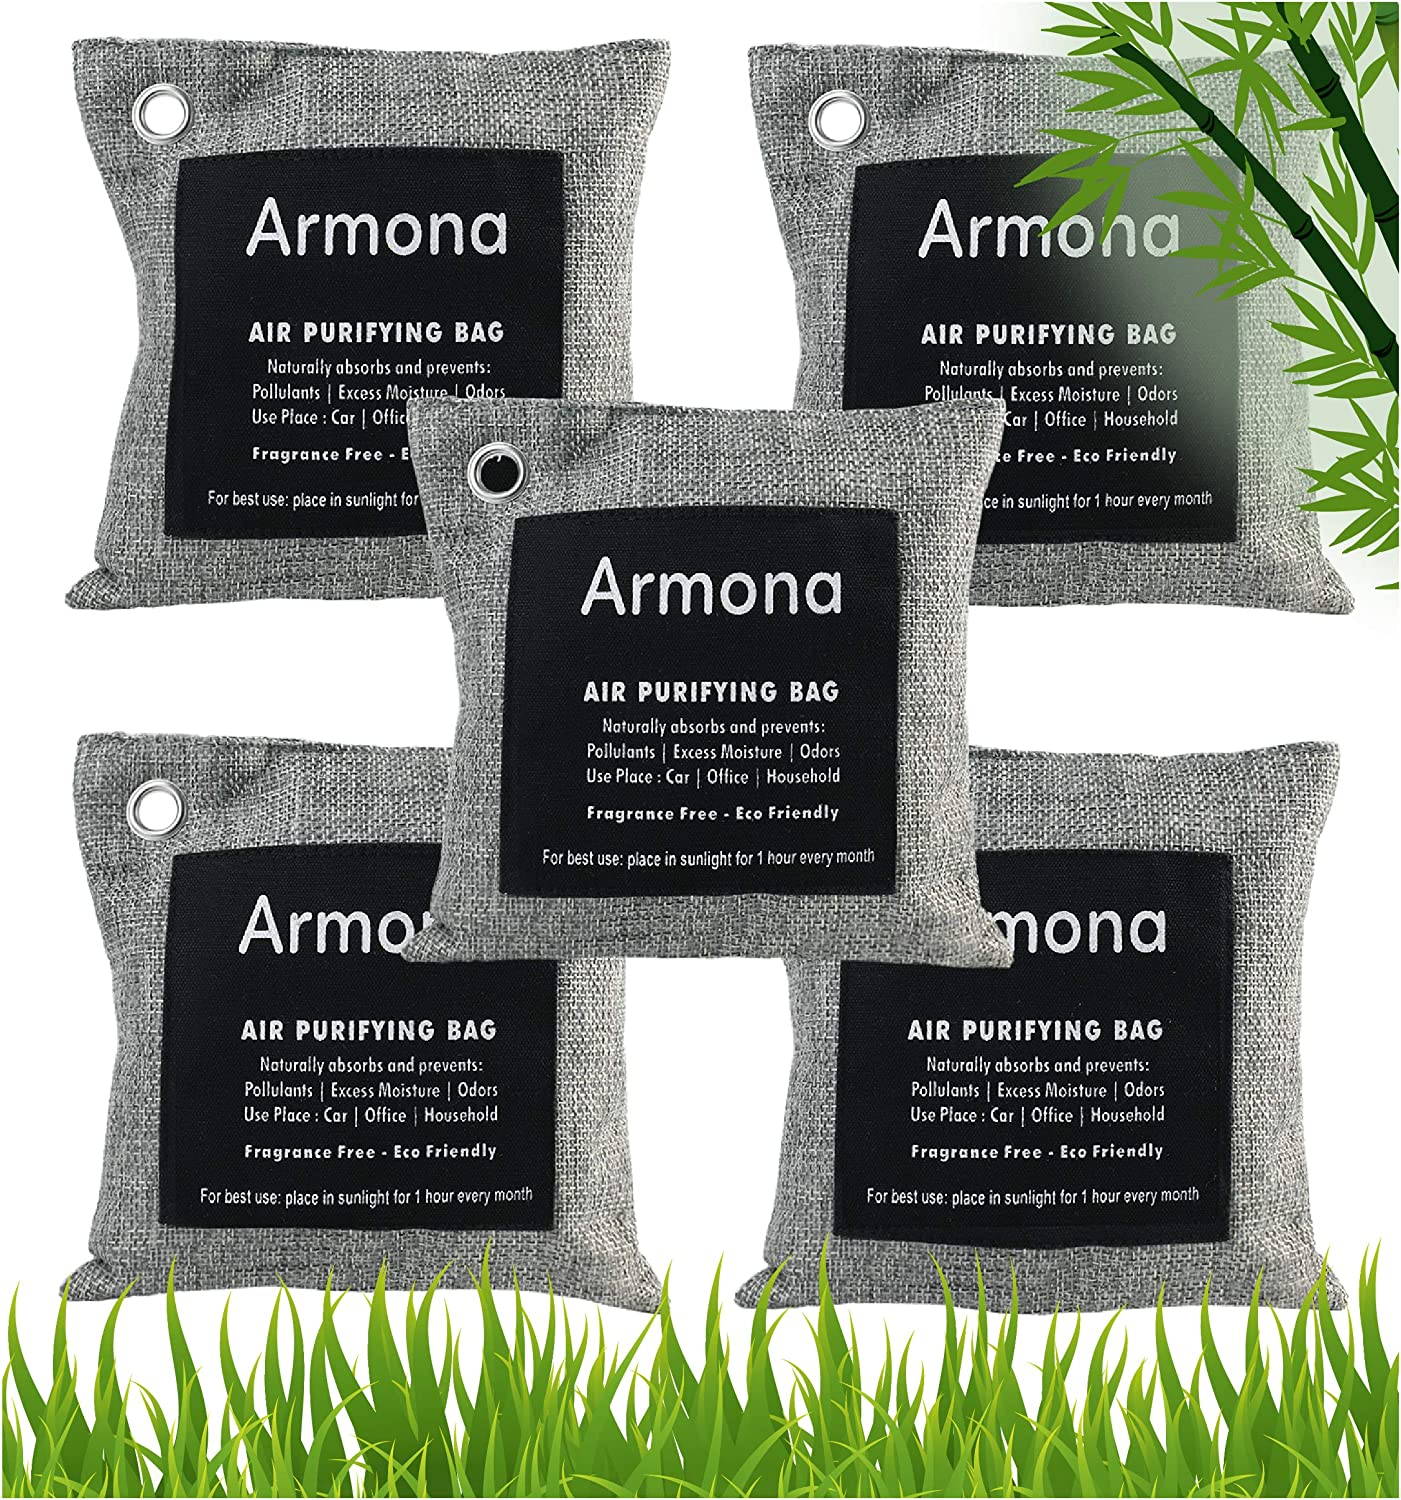 Charcoal Bags Odor Absorber- Activated Charcoal Air Purifying Bag - Charcoal Bags for Mold and Mildew- Charcoal Bags for Home, Shoe, Pets, Car - Bamboo Charcoal Bags with ring Hooks- 5 x 200 gm